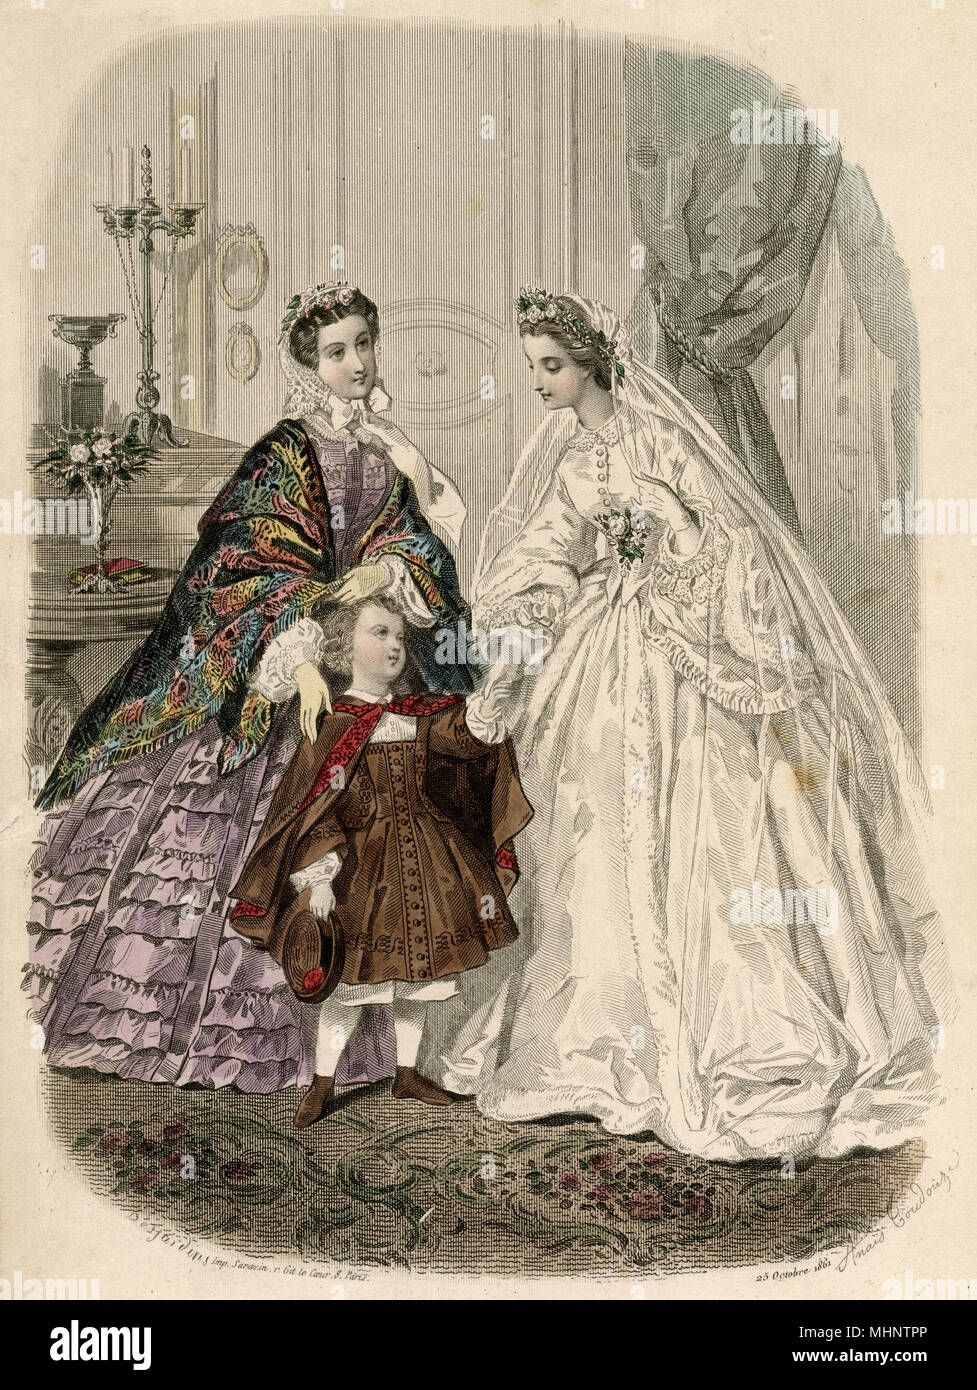 High buttoned corsage with collar, pointed waist with corsage, bell shaped  sleeves, page boy in brown and black tunic with cape and woman in pulple dress with rainbow shawl.     Date: 1861 - Stock Image